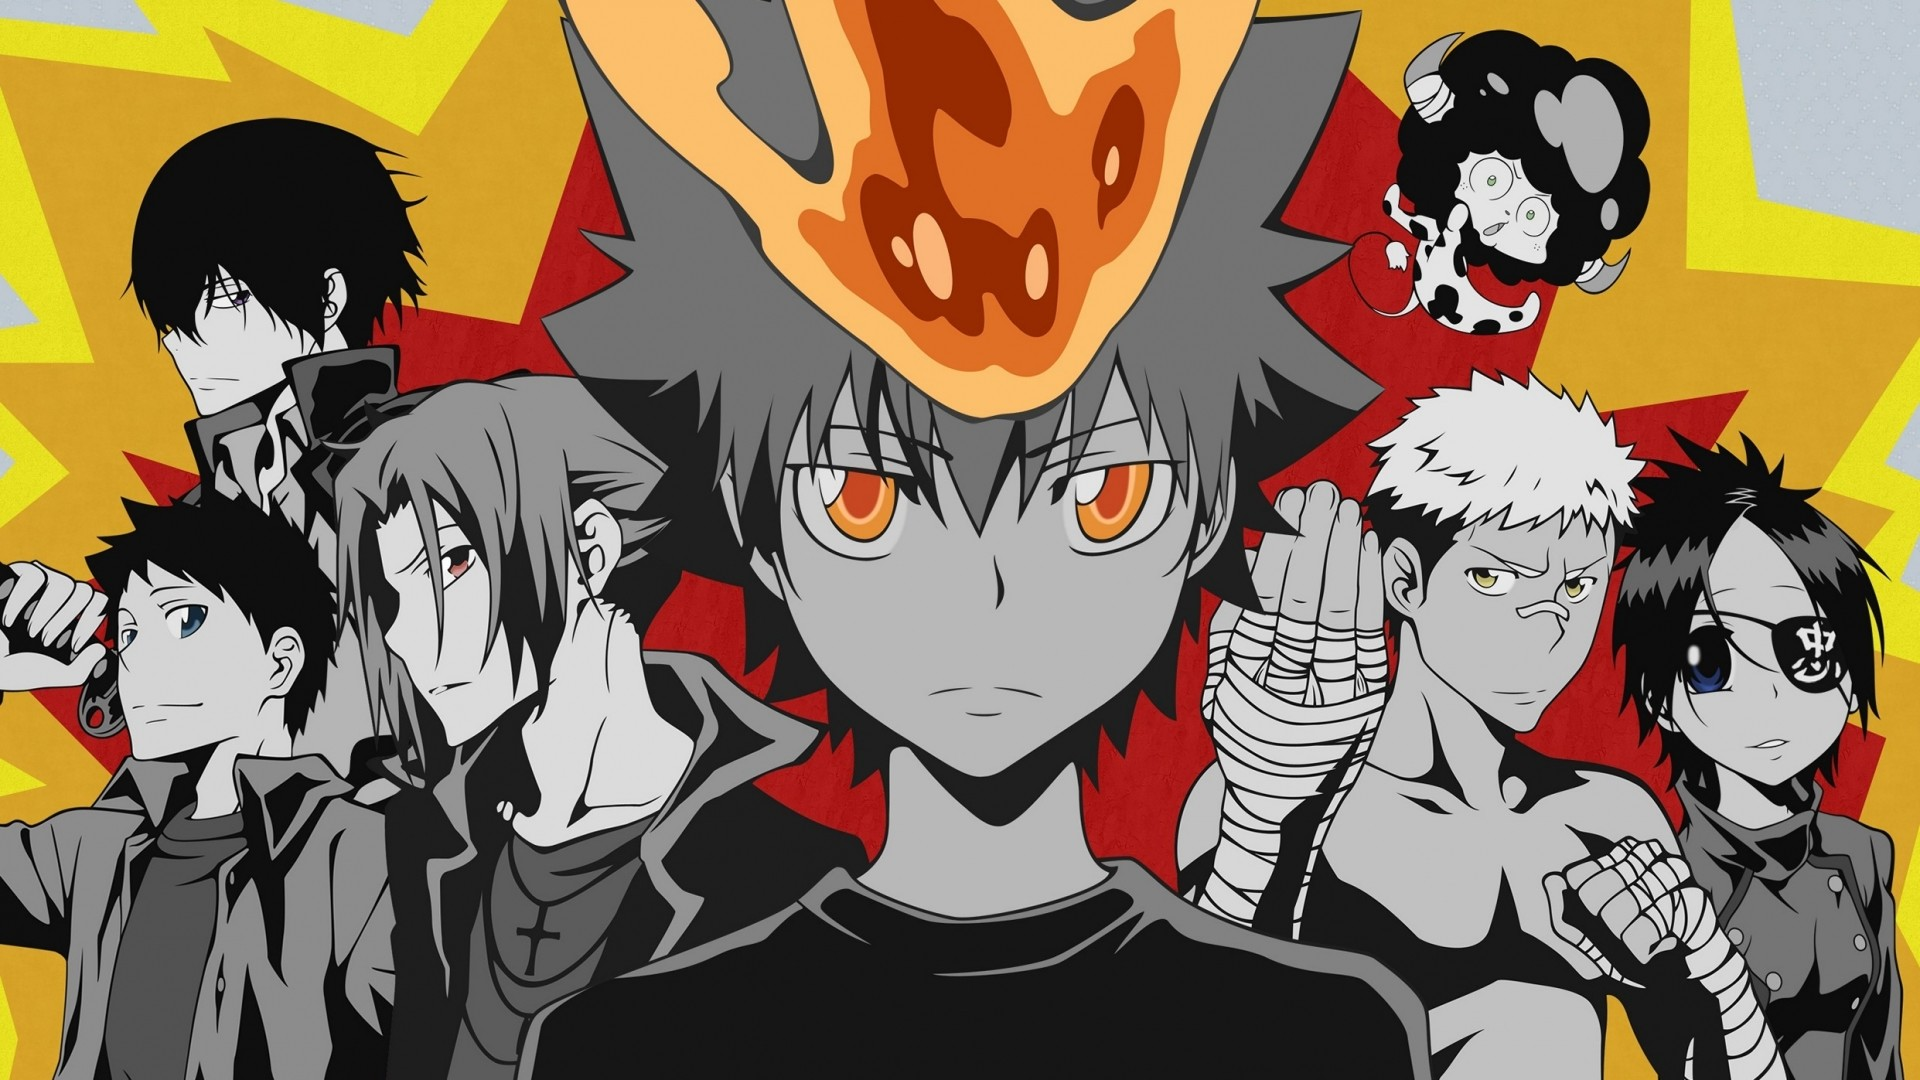 Download Katekyo Hitman Reborn Ghost Boy Crowd Background Popular